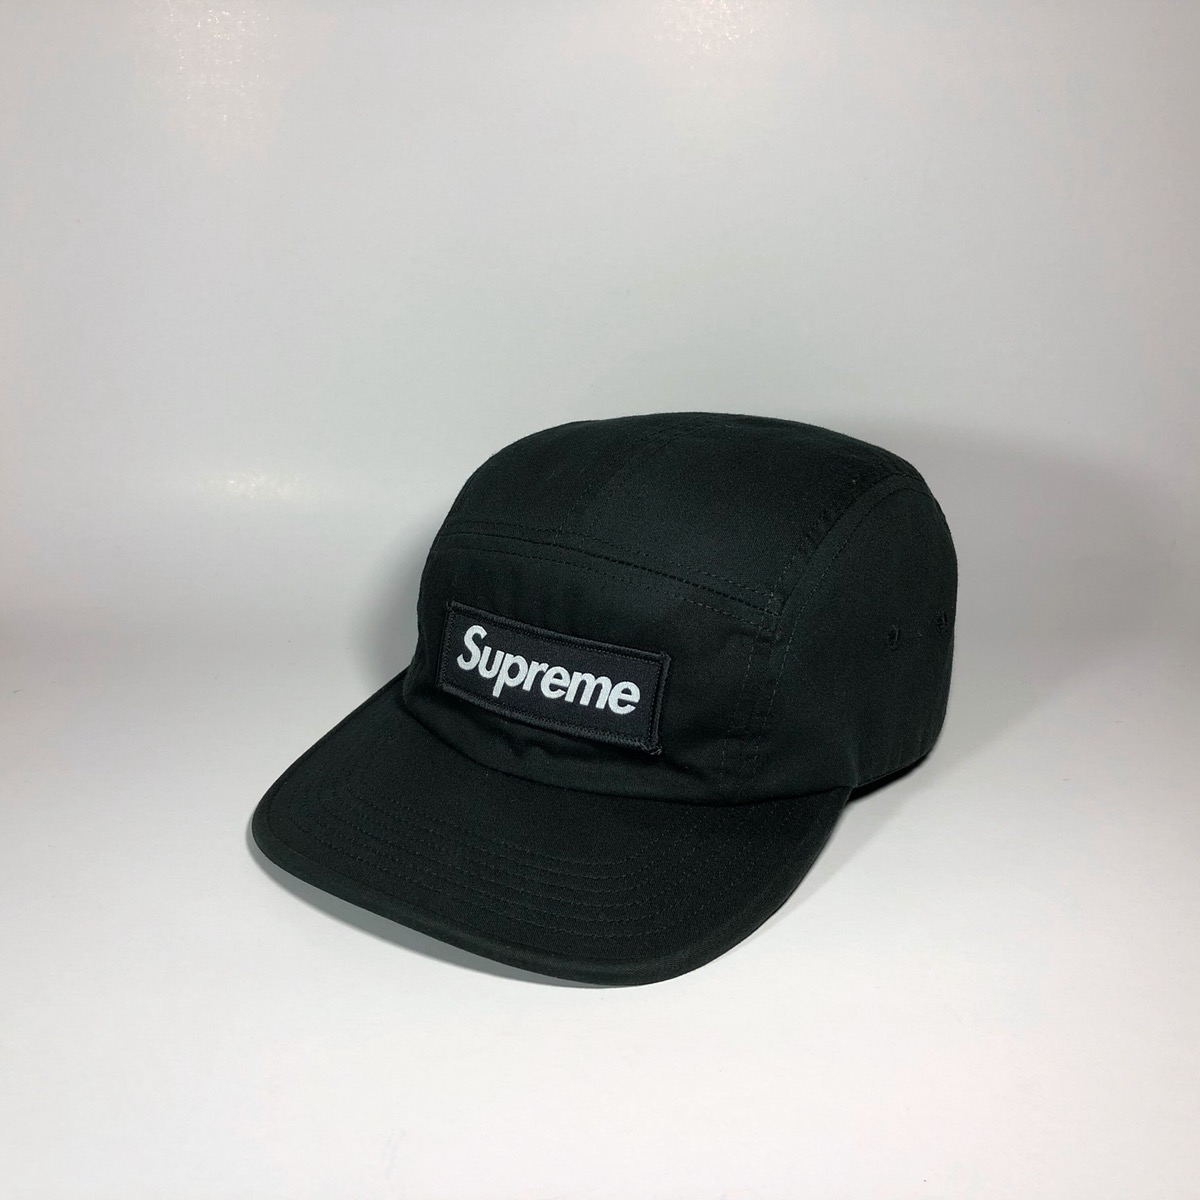 7a6d76f2 Supreme Supreme Military Camp Cap Ss18 | Grailed